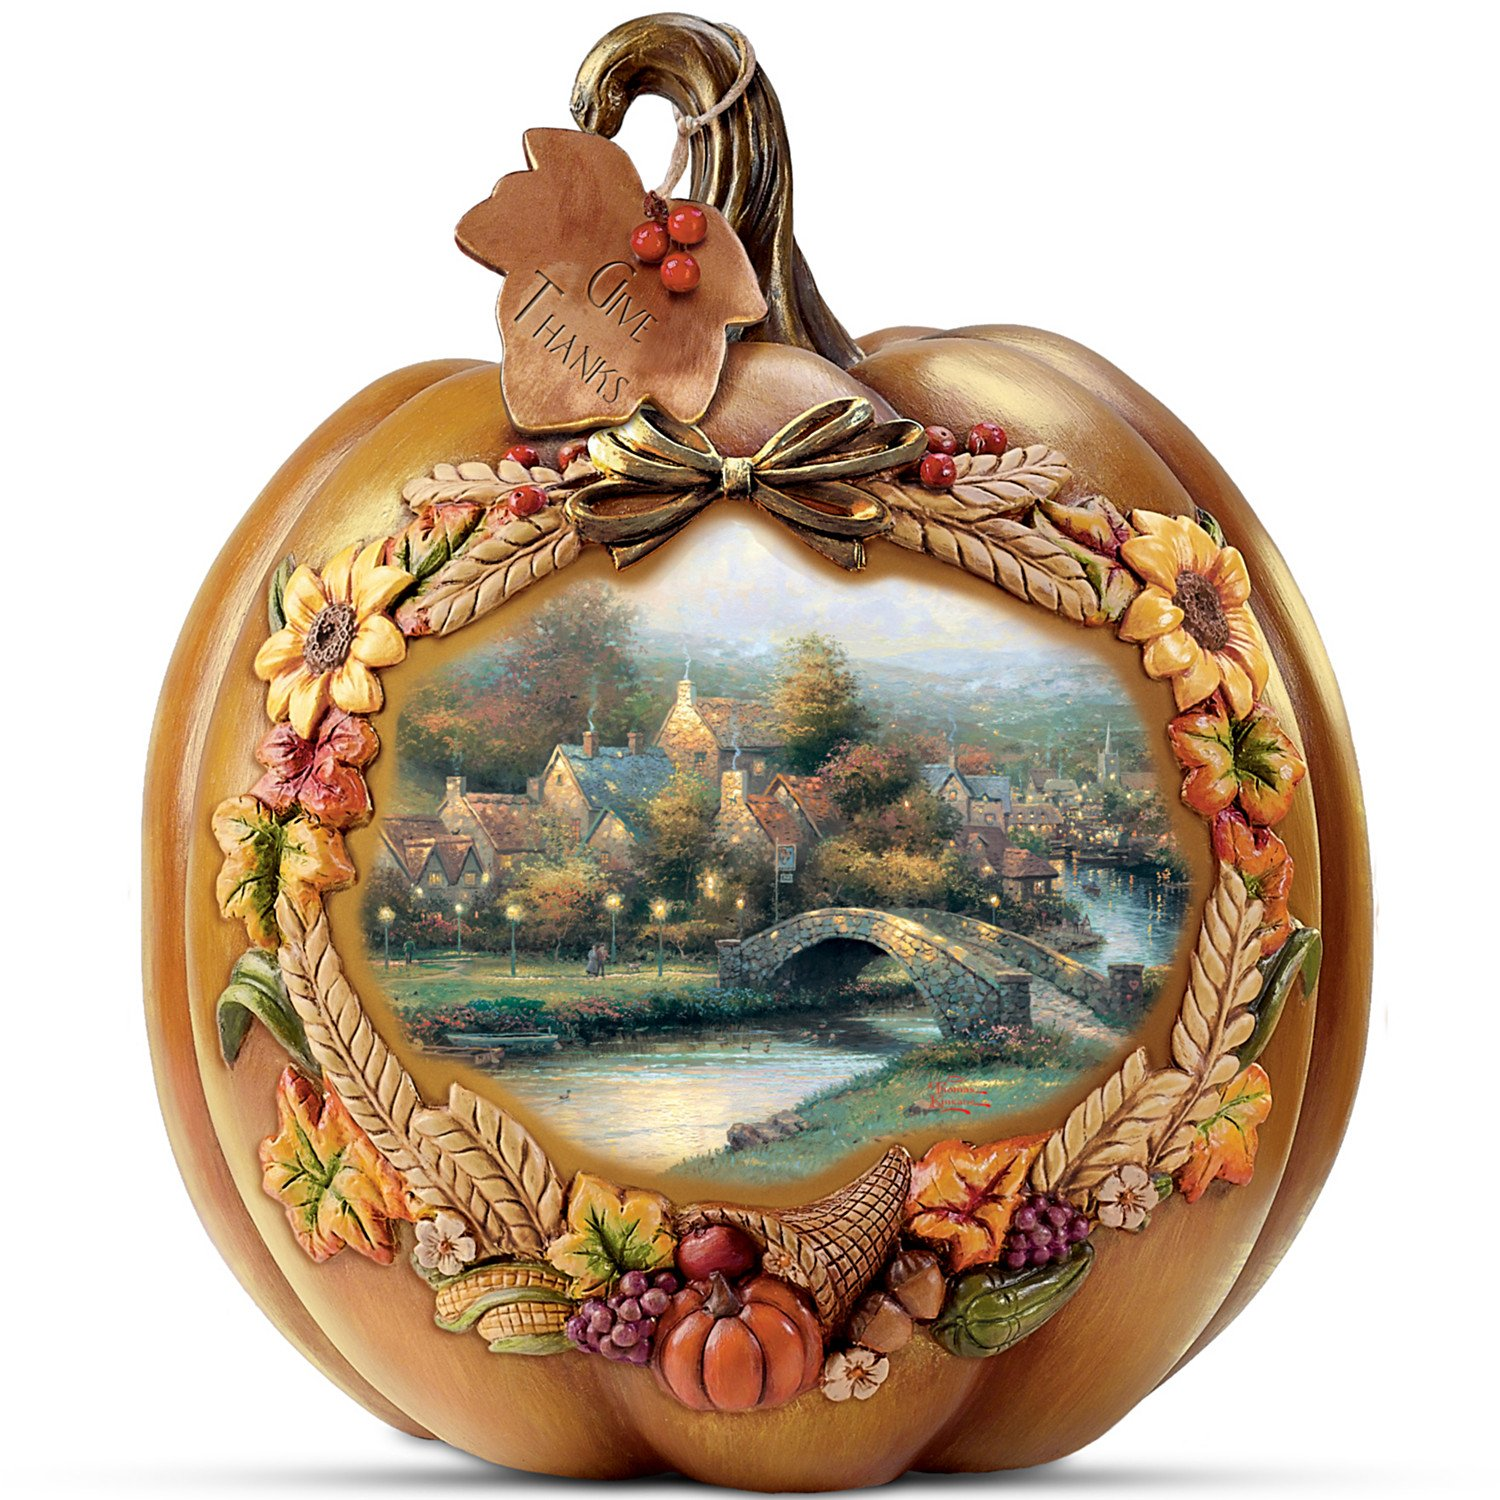 Thomas Kinkade Thanksgiving Give Thanks Illuminated Tabletop Pumpkin Display 8